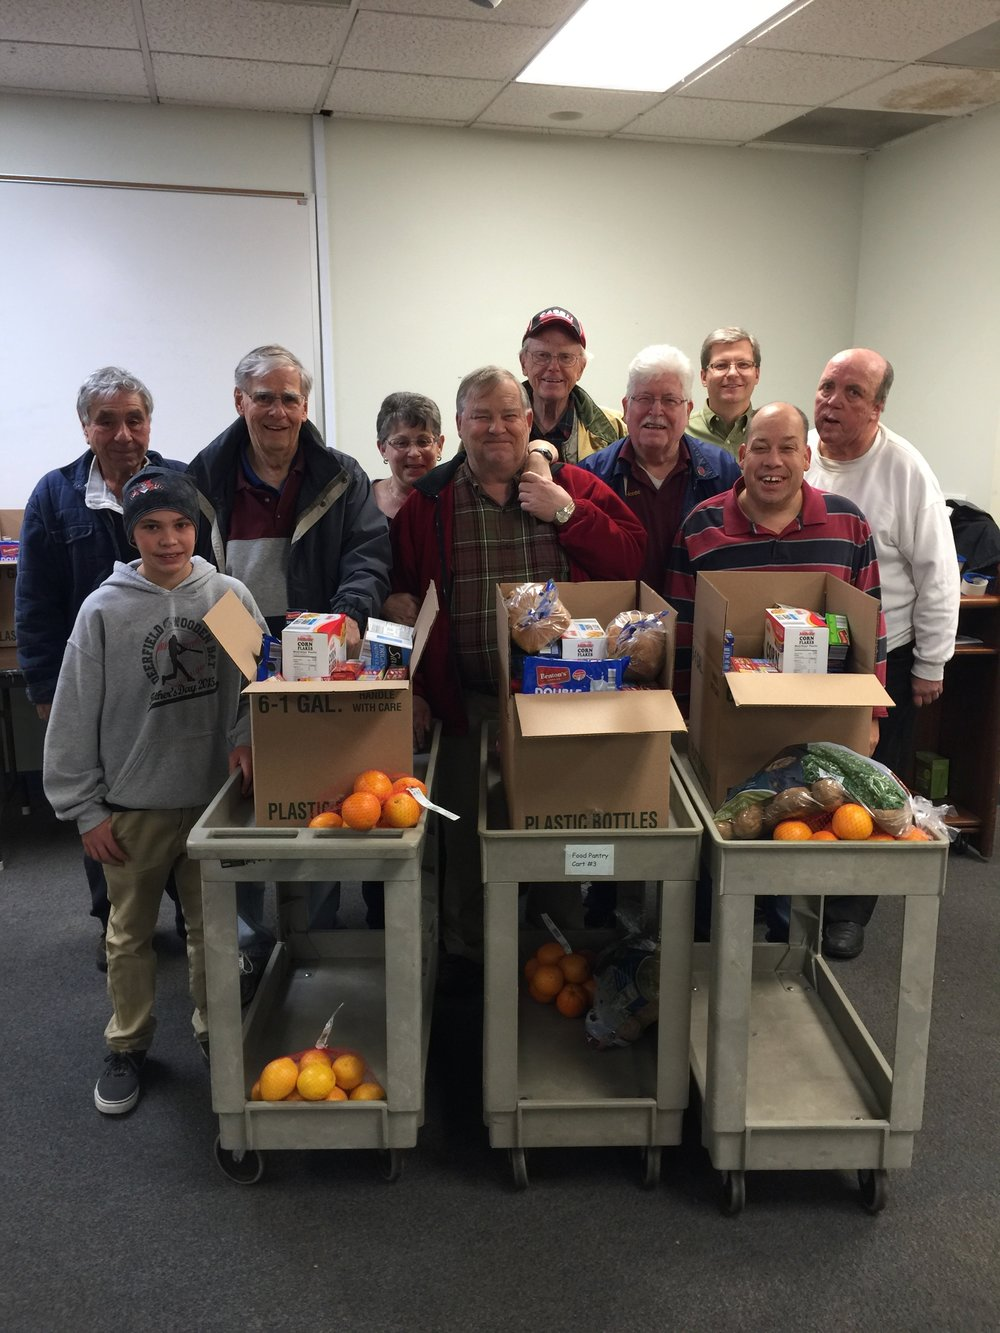 Our team with 3 complete food baskets ready for delivery.  Over the years we have provided more than 3,200 food baskets to our local community through the St. Joseph Catholic Church' Food Pantry.